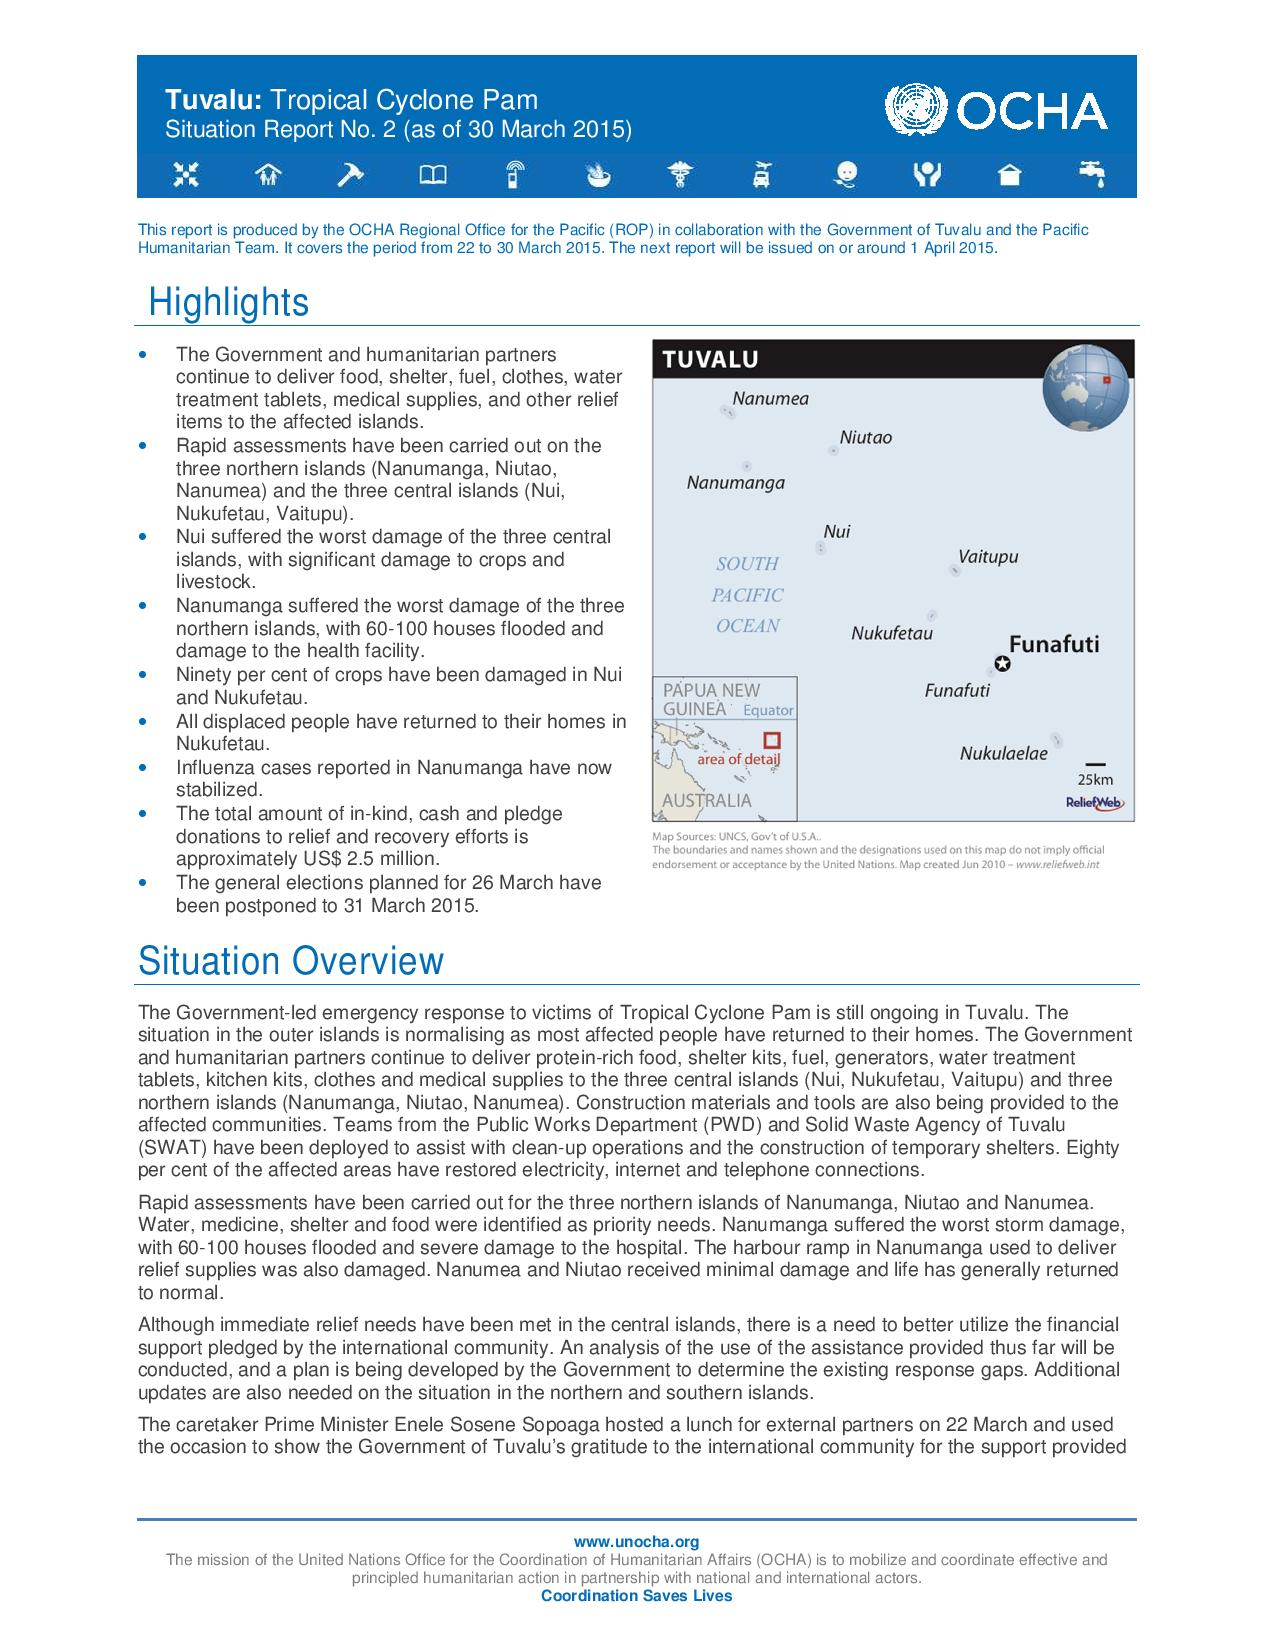 reliefweb.int_sites_reliefweb.int_files_resources_Tuvalu Tropical Cyclone Pam Situation Report No. 2-page-001.jpg